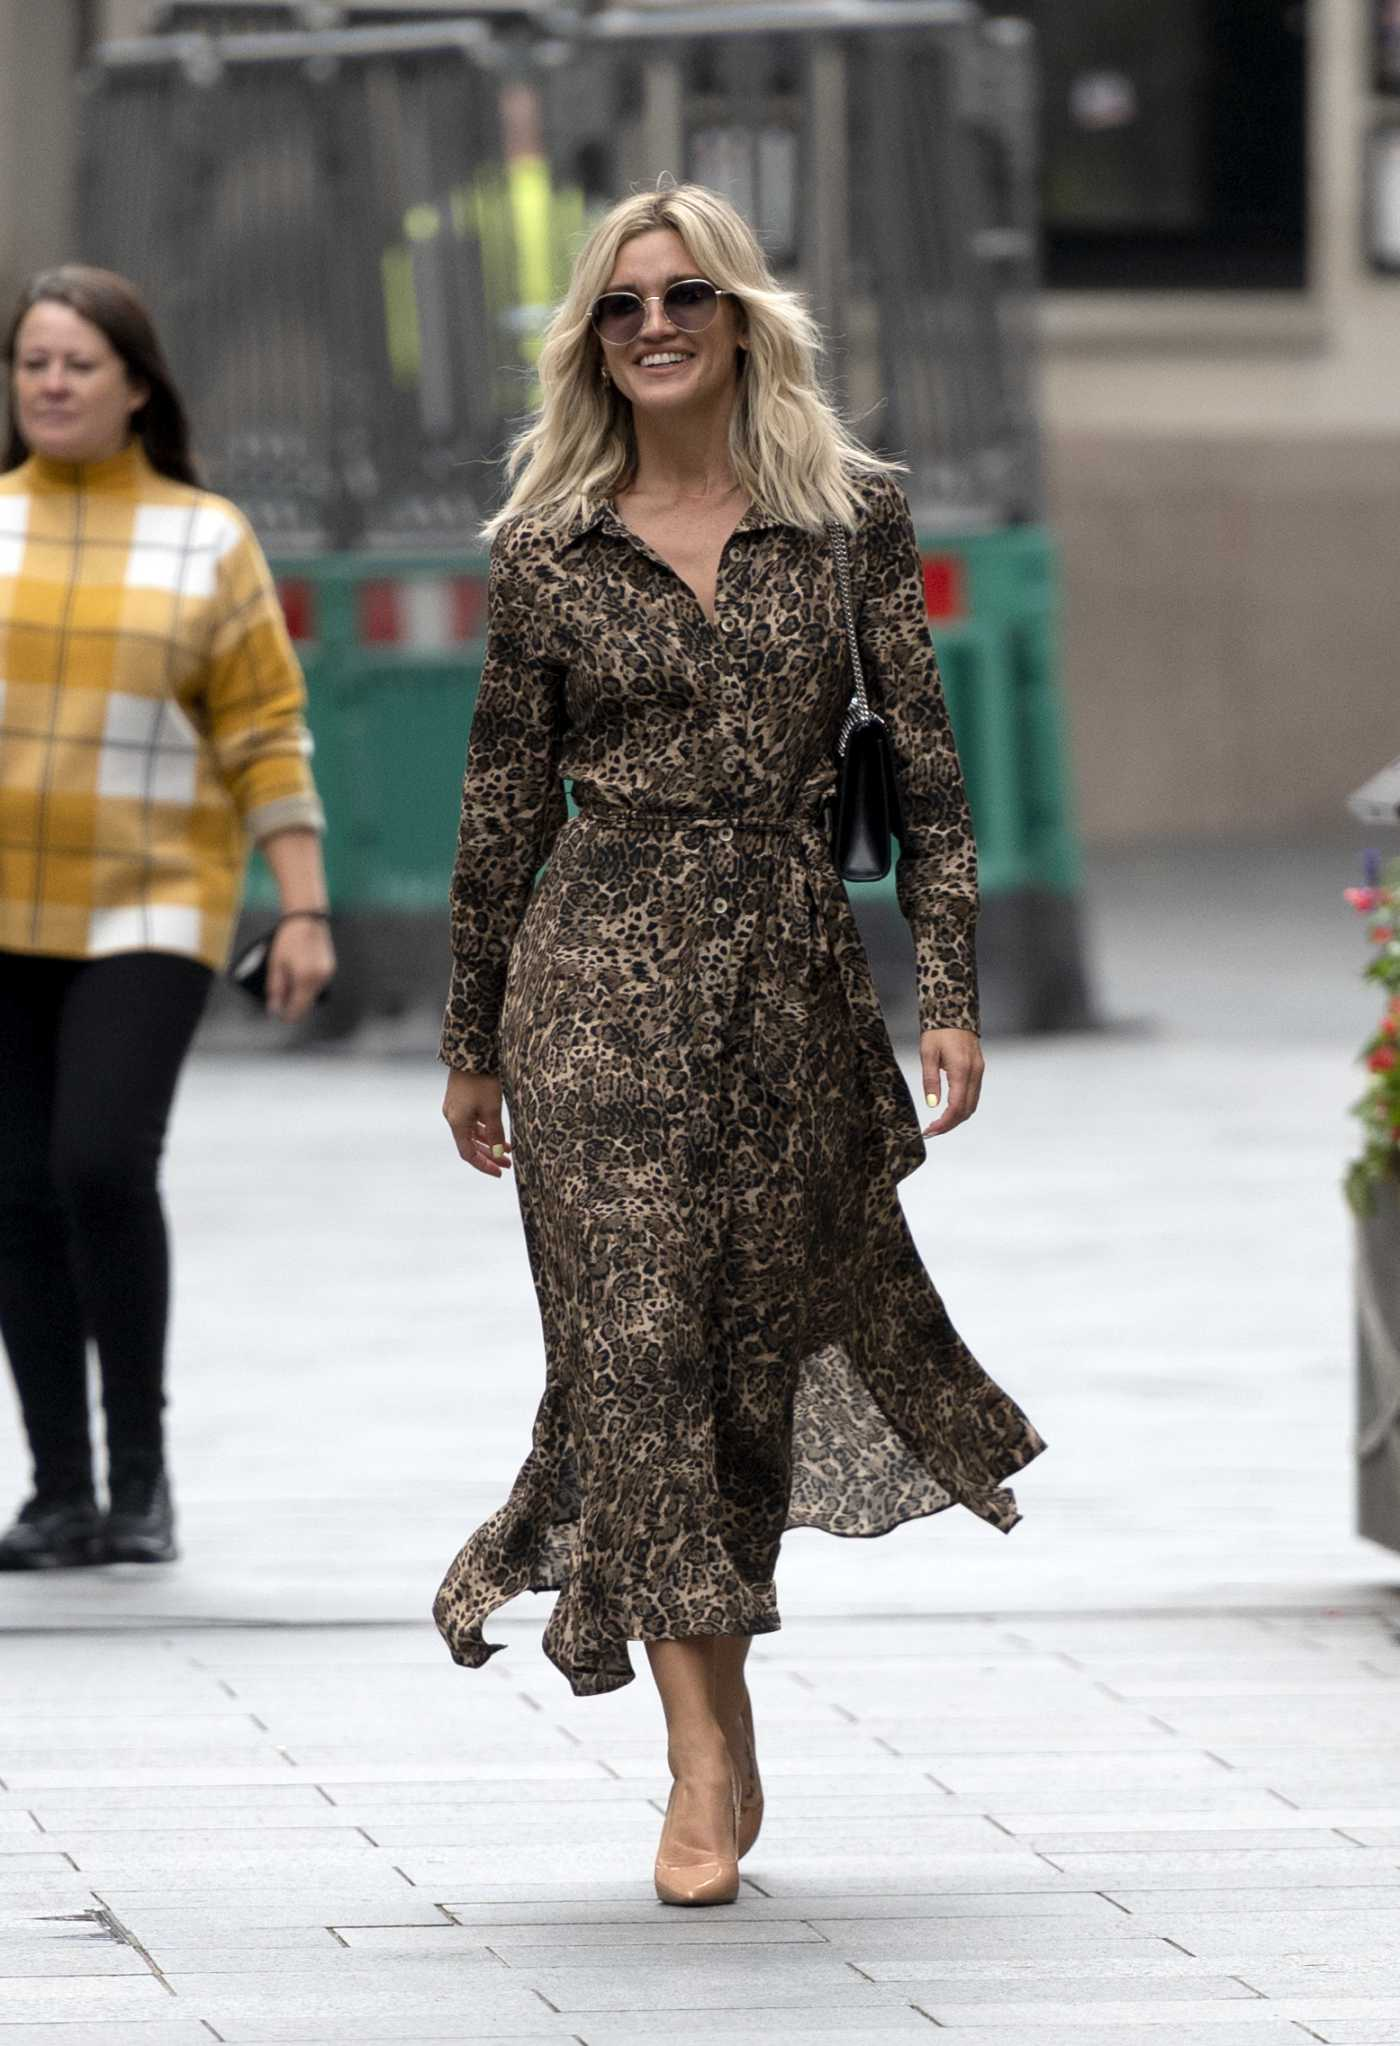 Ashley Roberts in an Animal Print Dress Arrives at the Global Radio Studios in London 09/04/2020